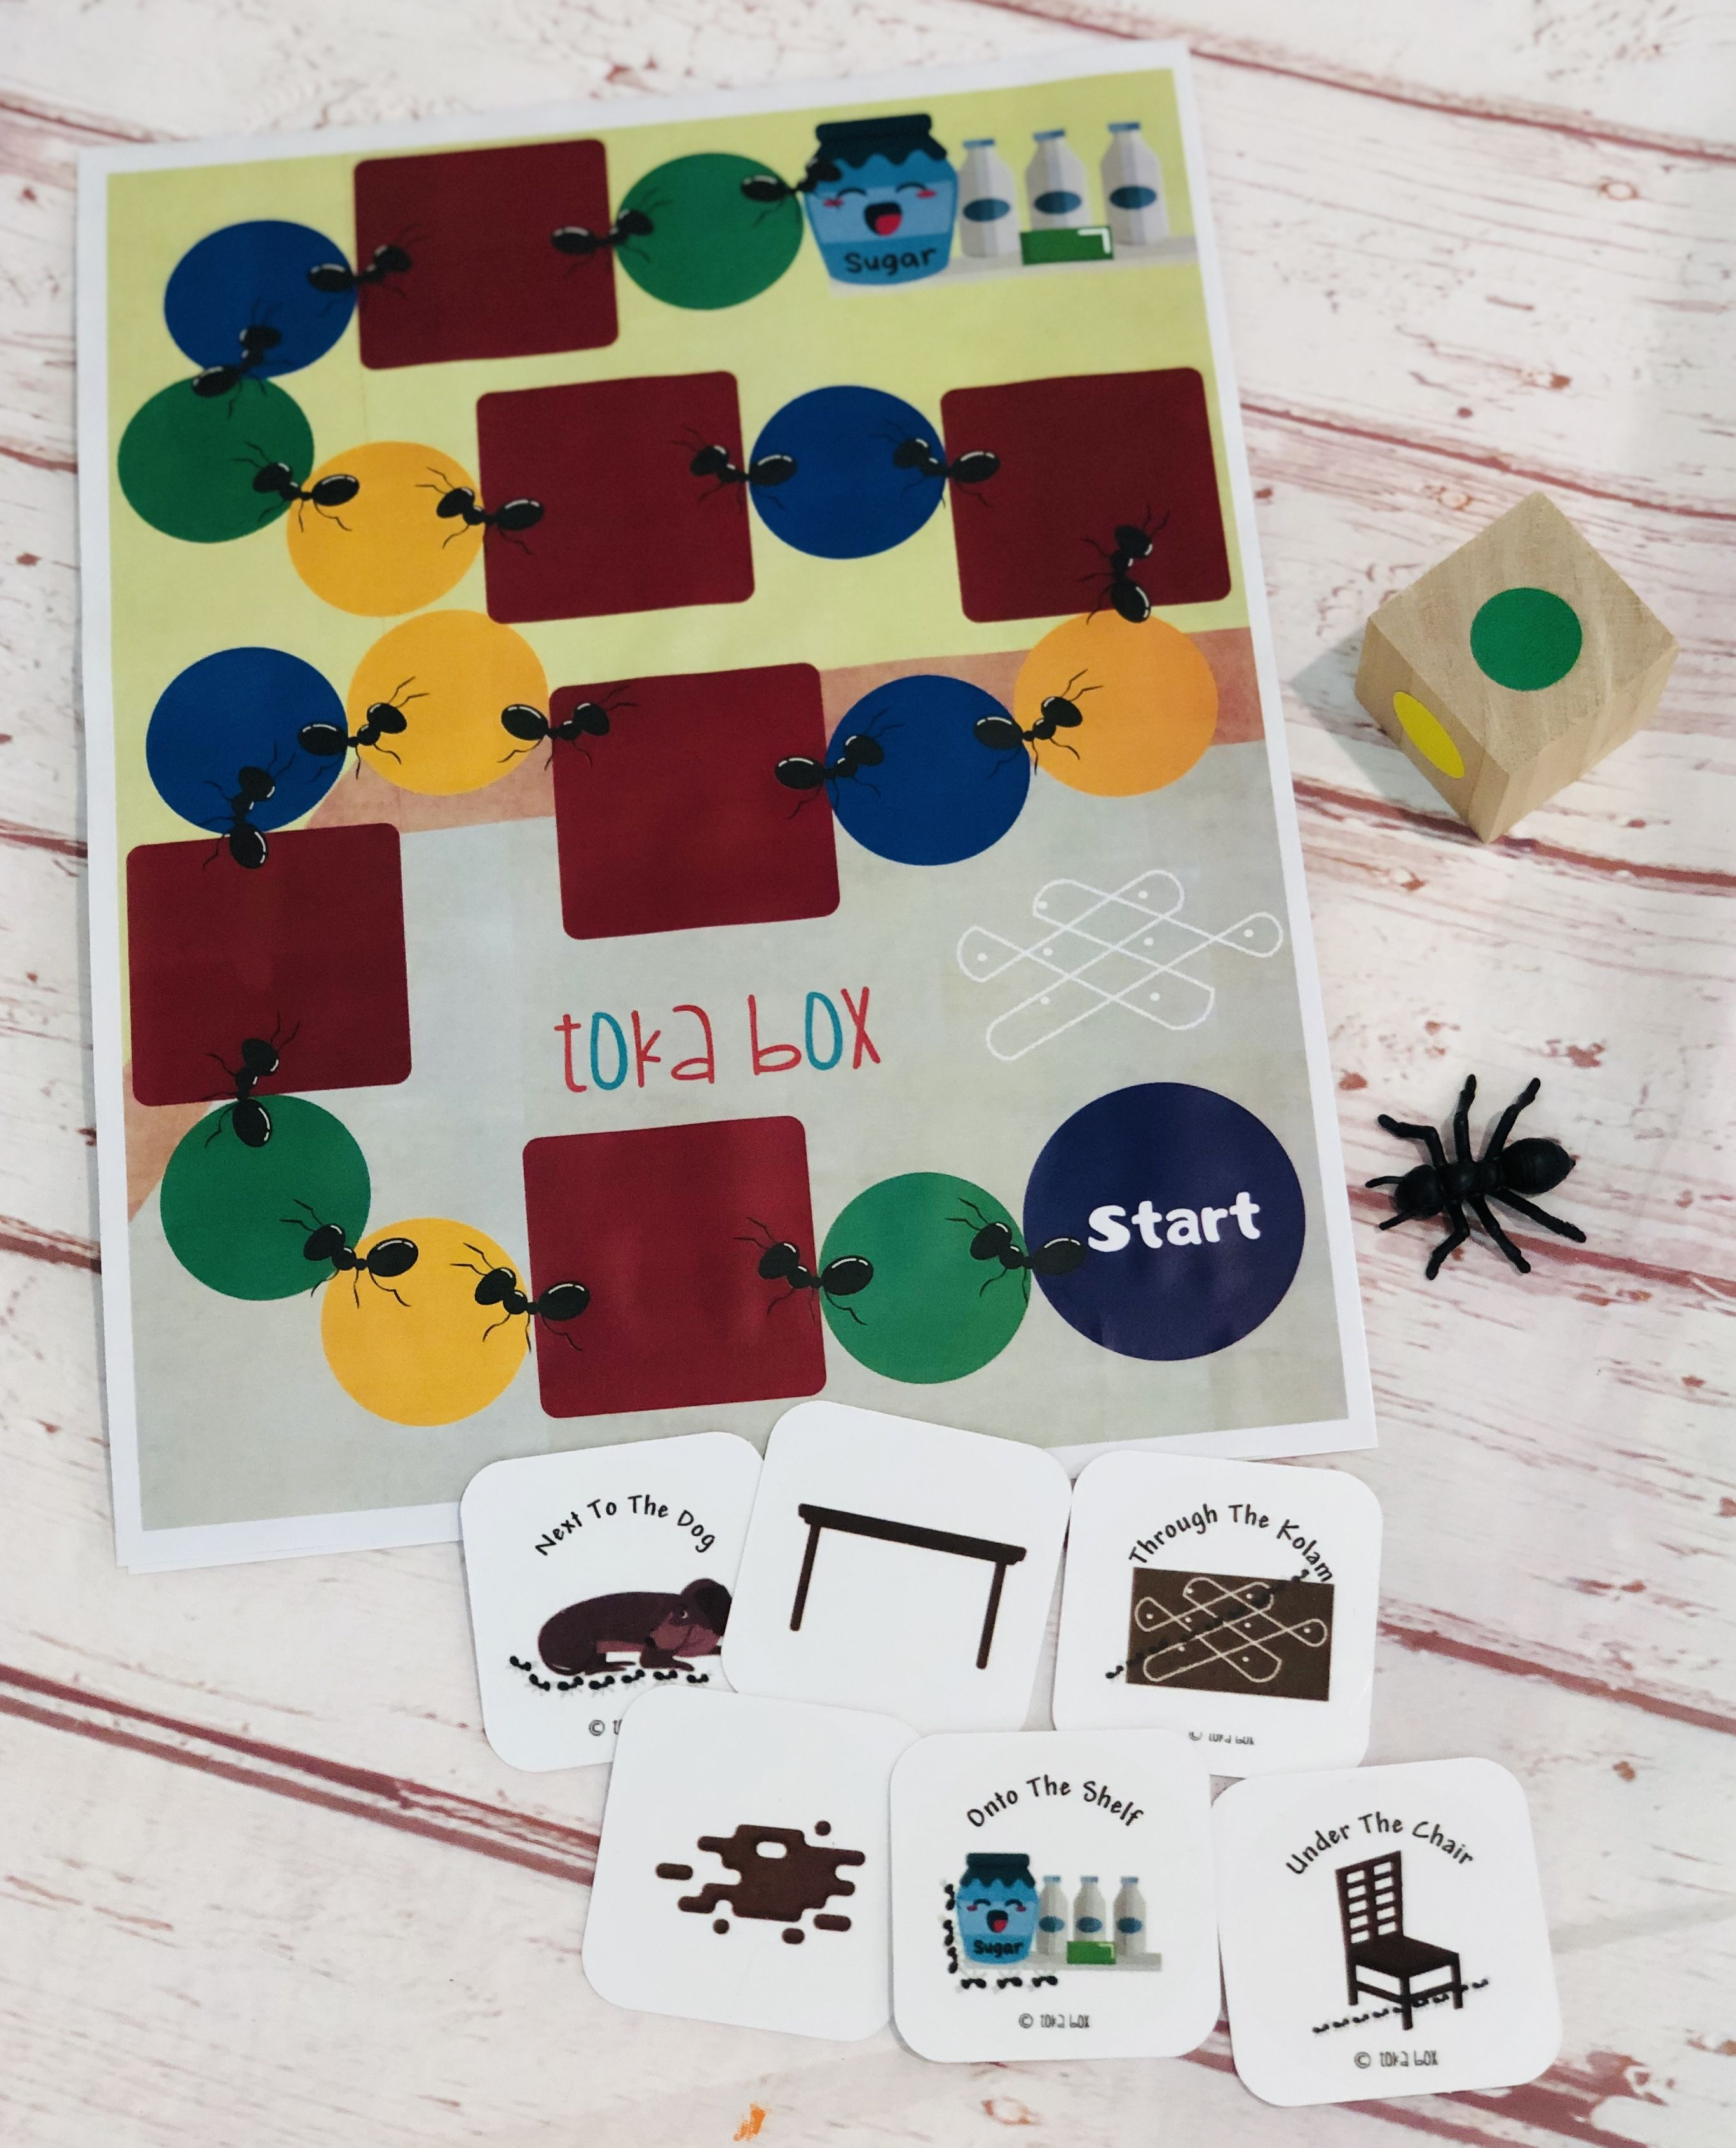 Language Learning With A Board Game For Preschoolers